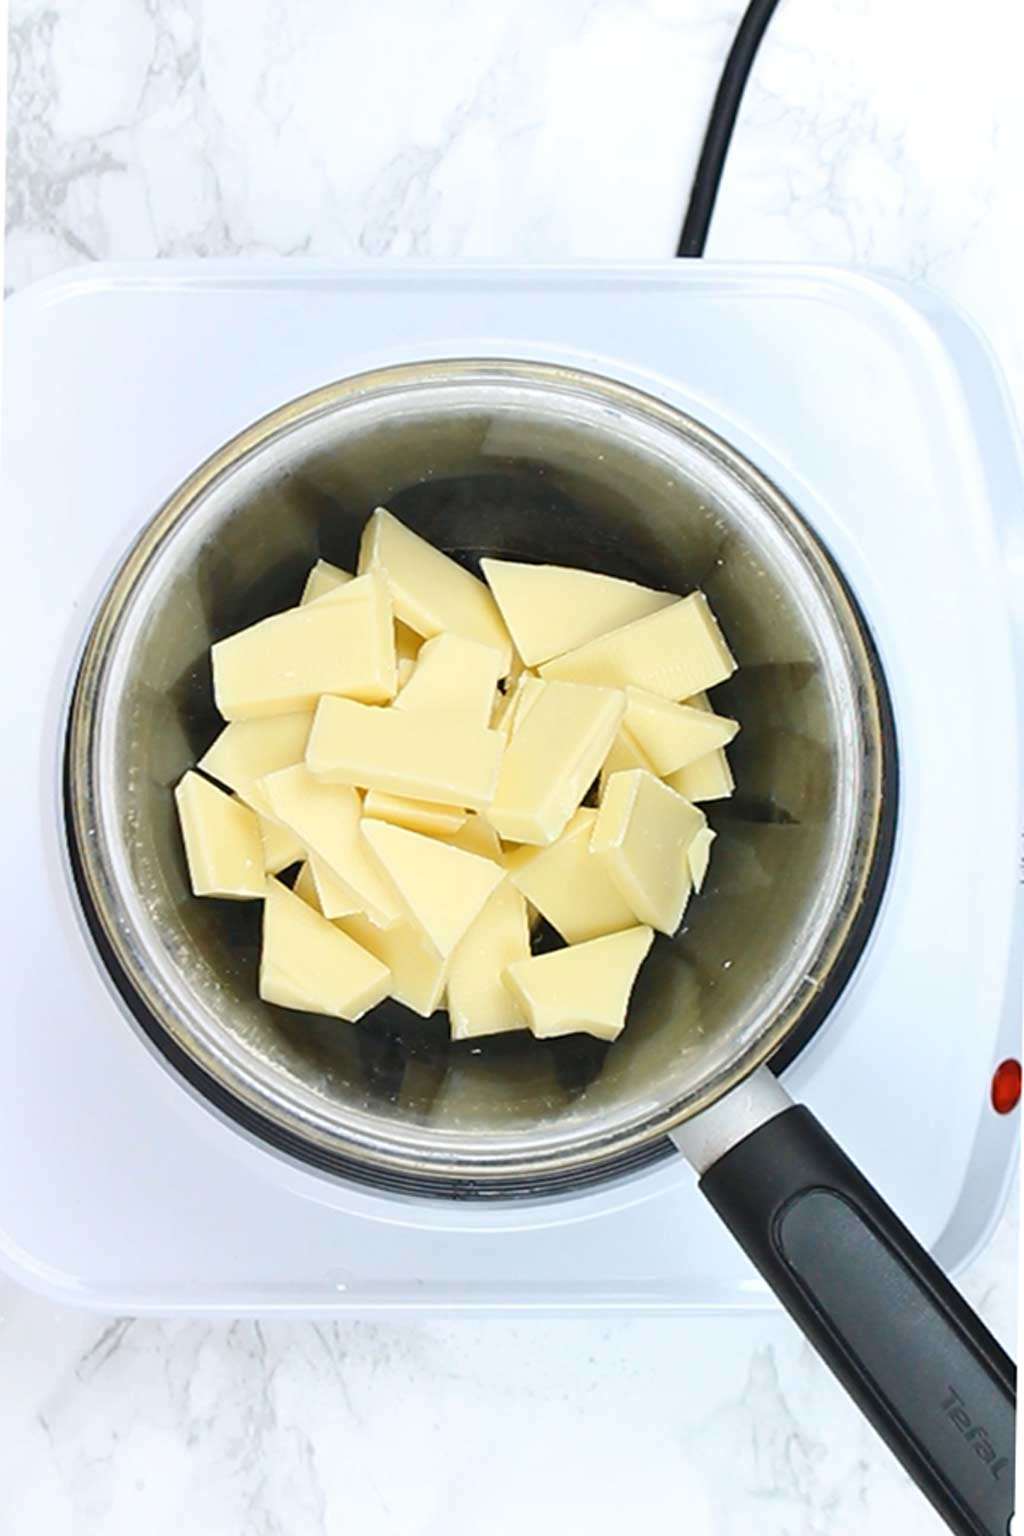 chopped white chocolate in a bowl over a pot of simmering water